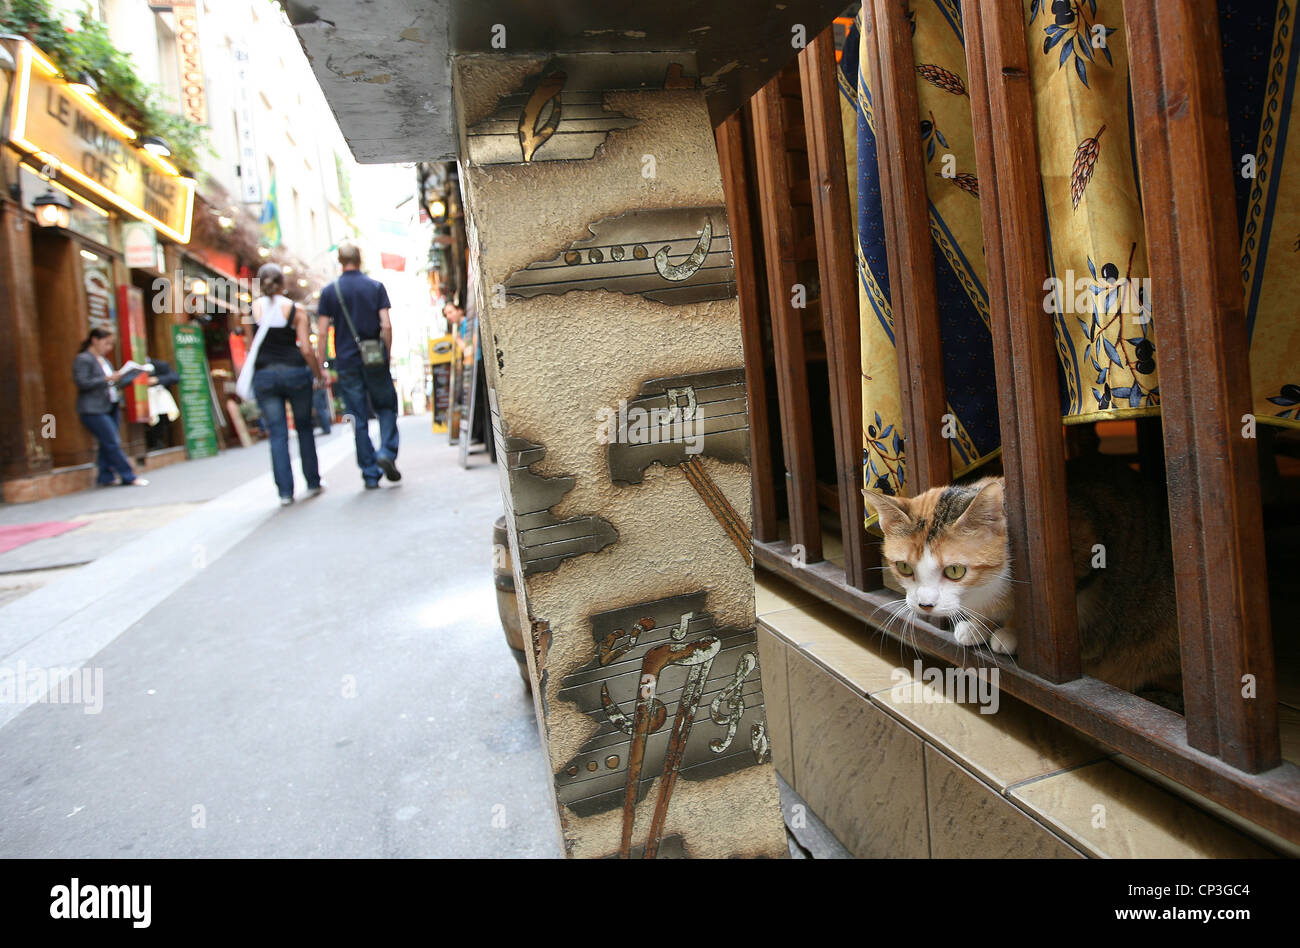 Cat left bank Paris France - Stock Image